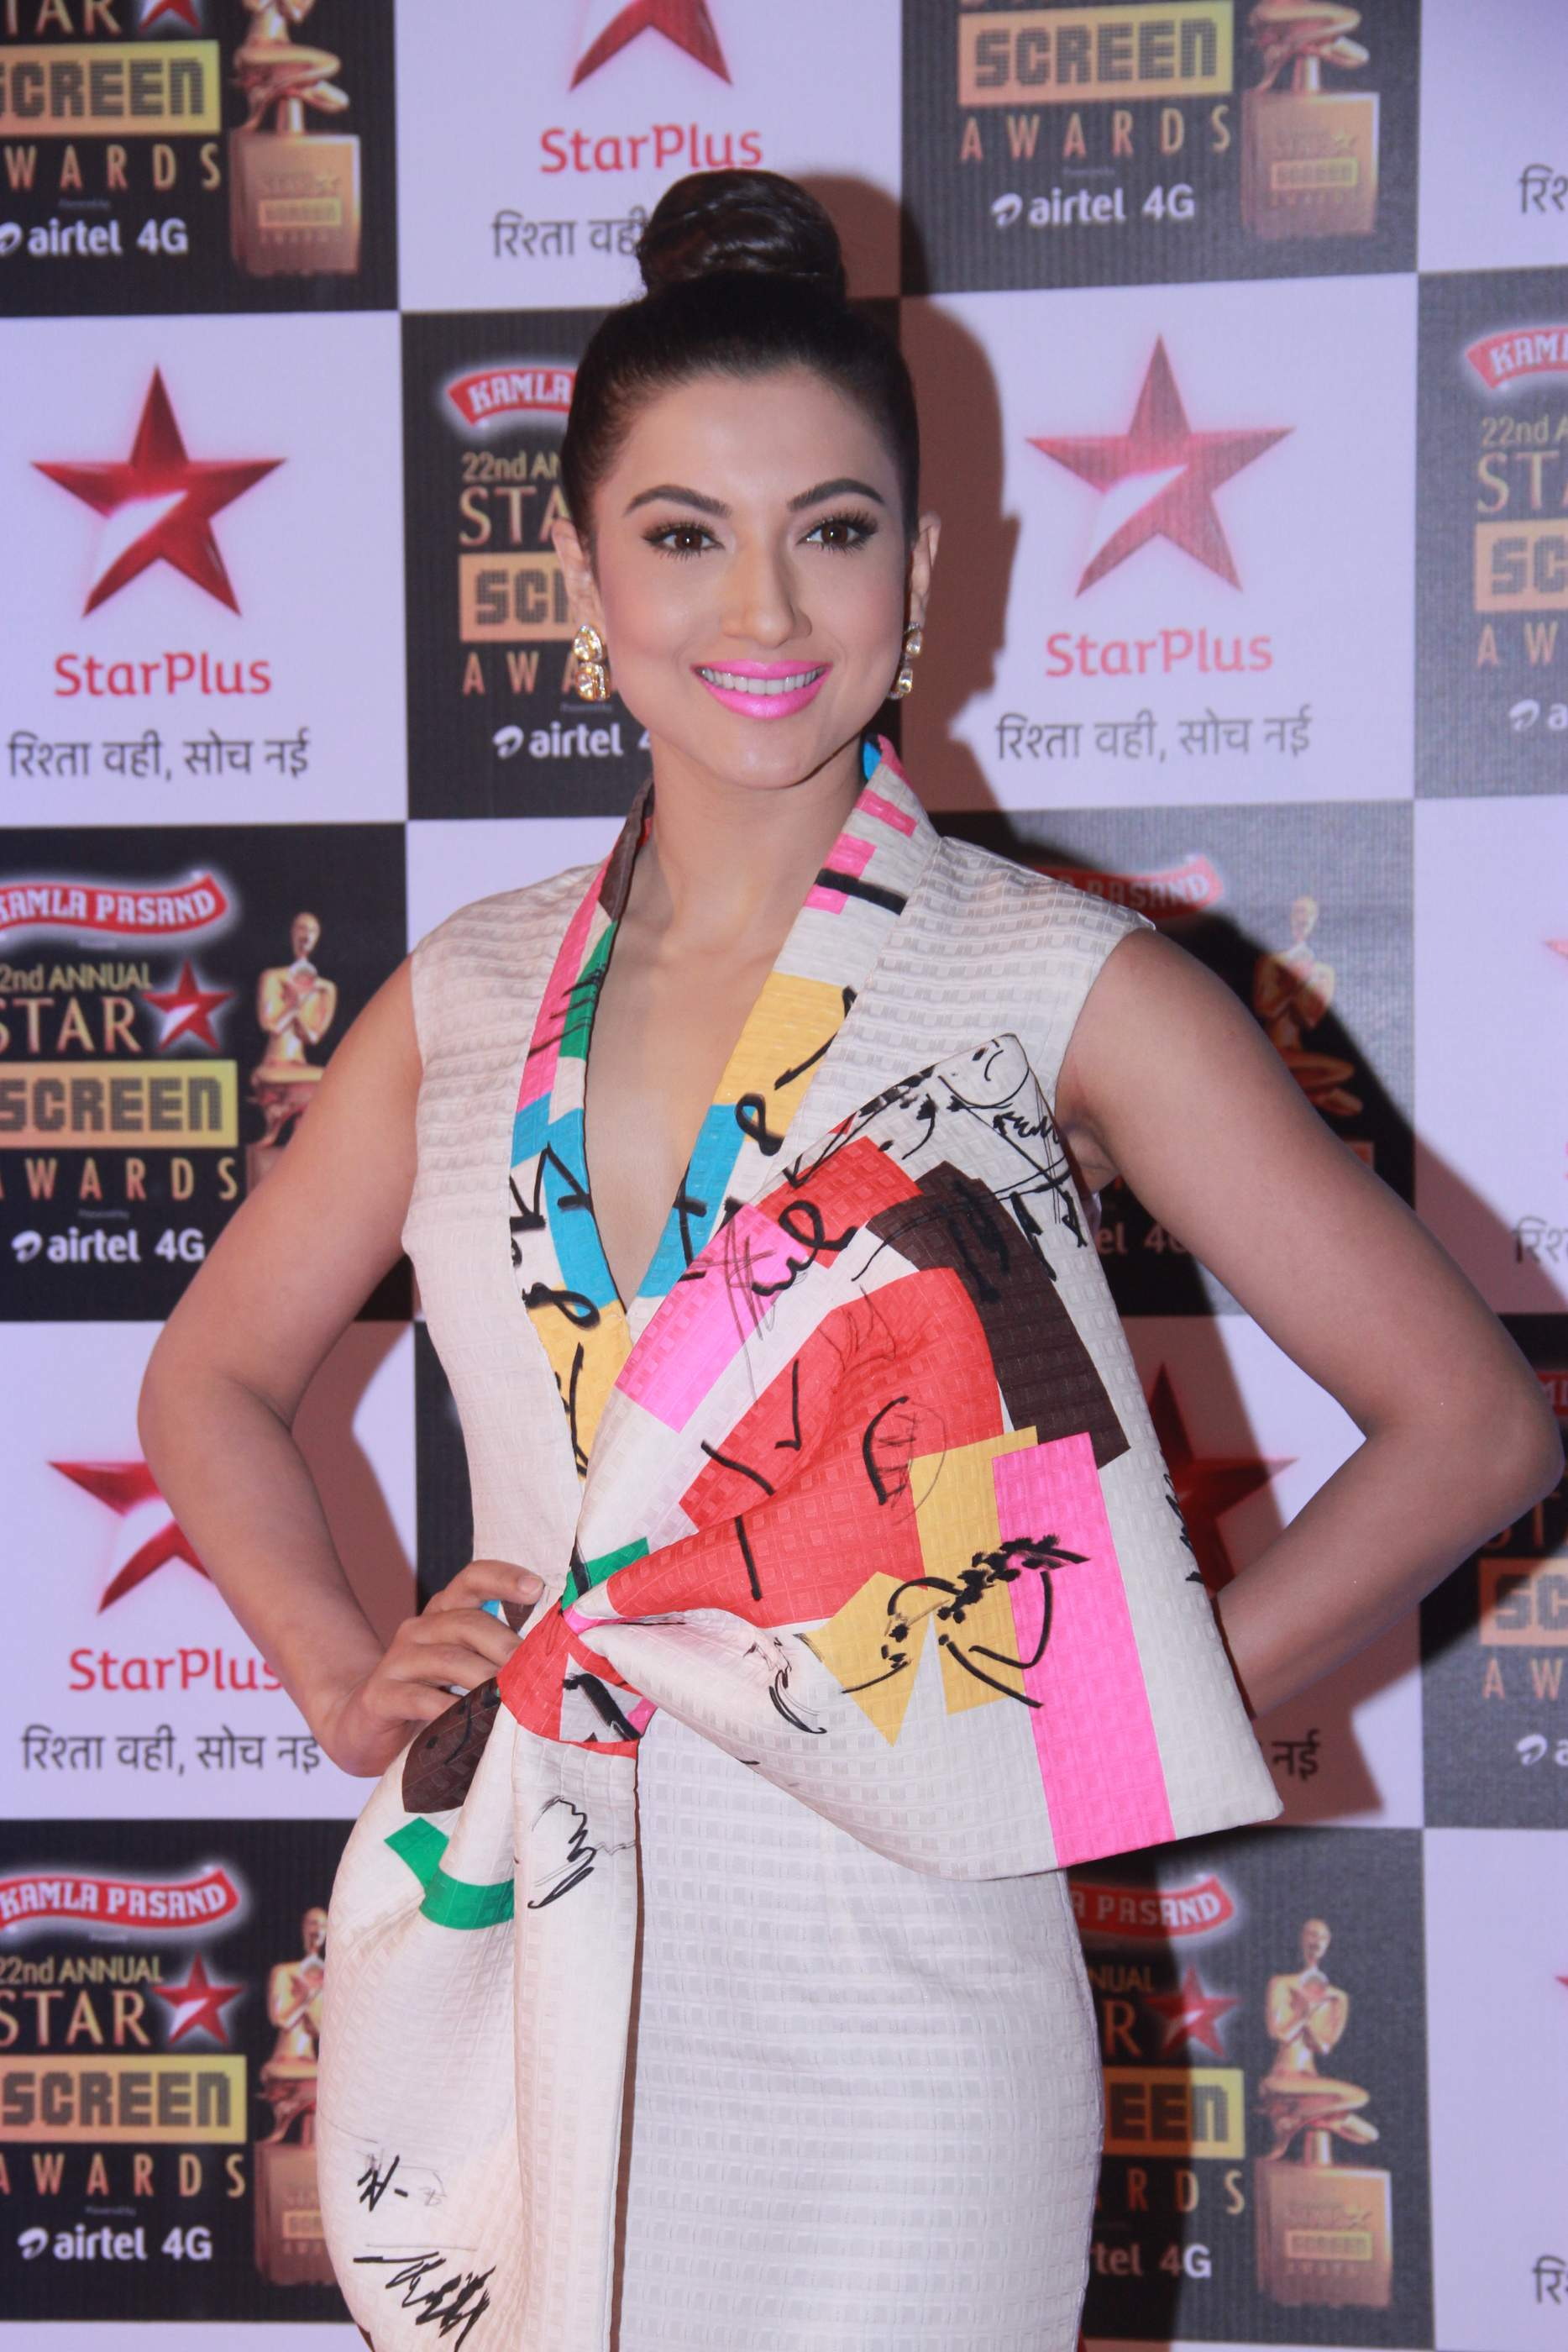 Bollywood: Star Screen Awards 2016:  Bollywood celebs and their different avatars